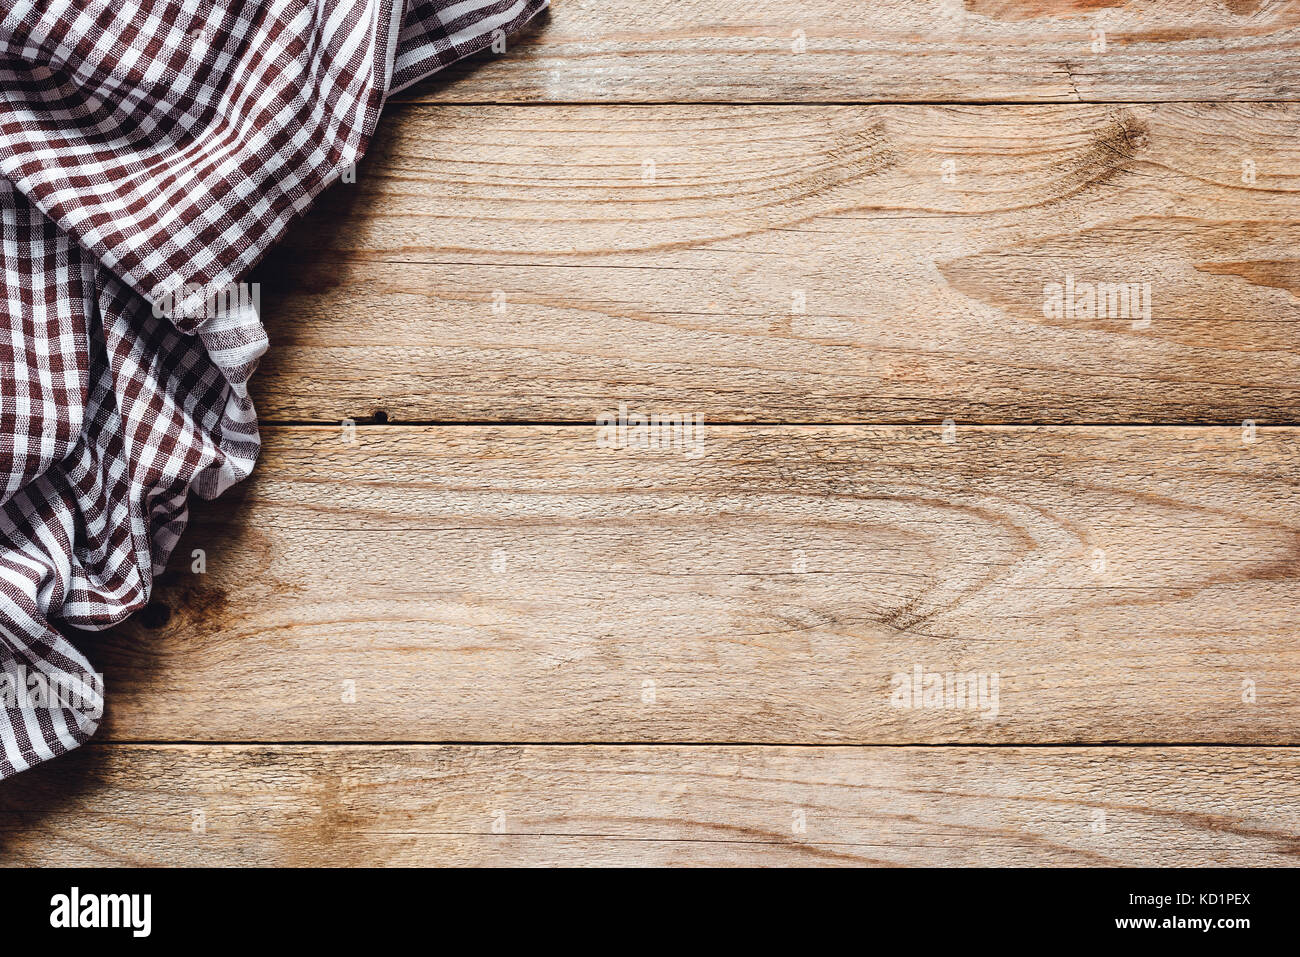 Wooden Table Background With Kitchen Textile Or Kitchen